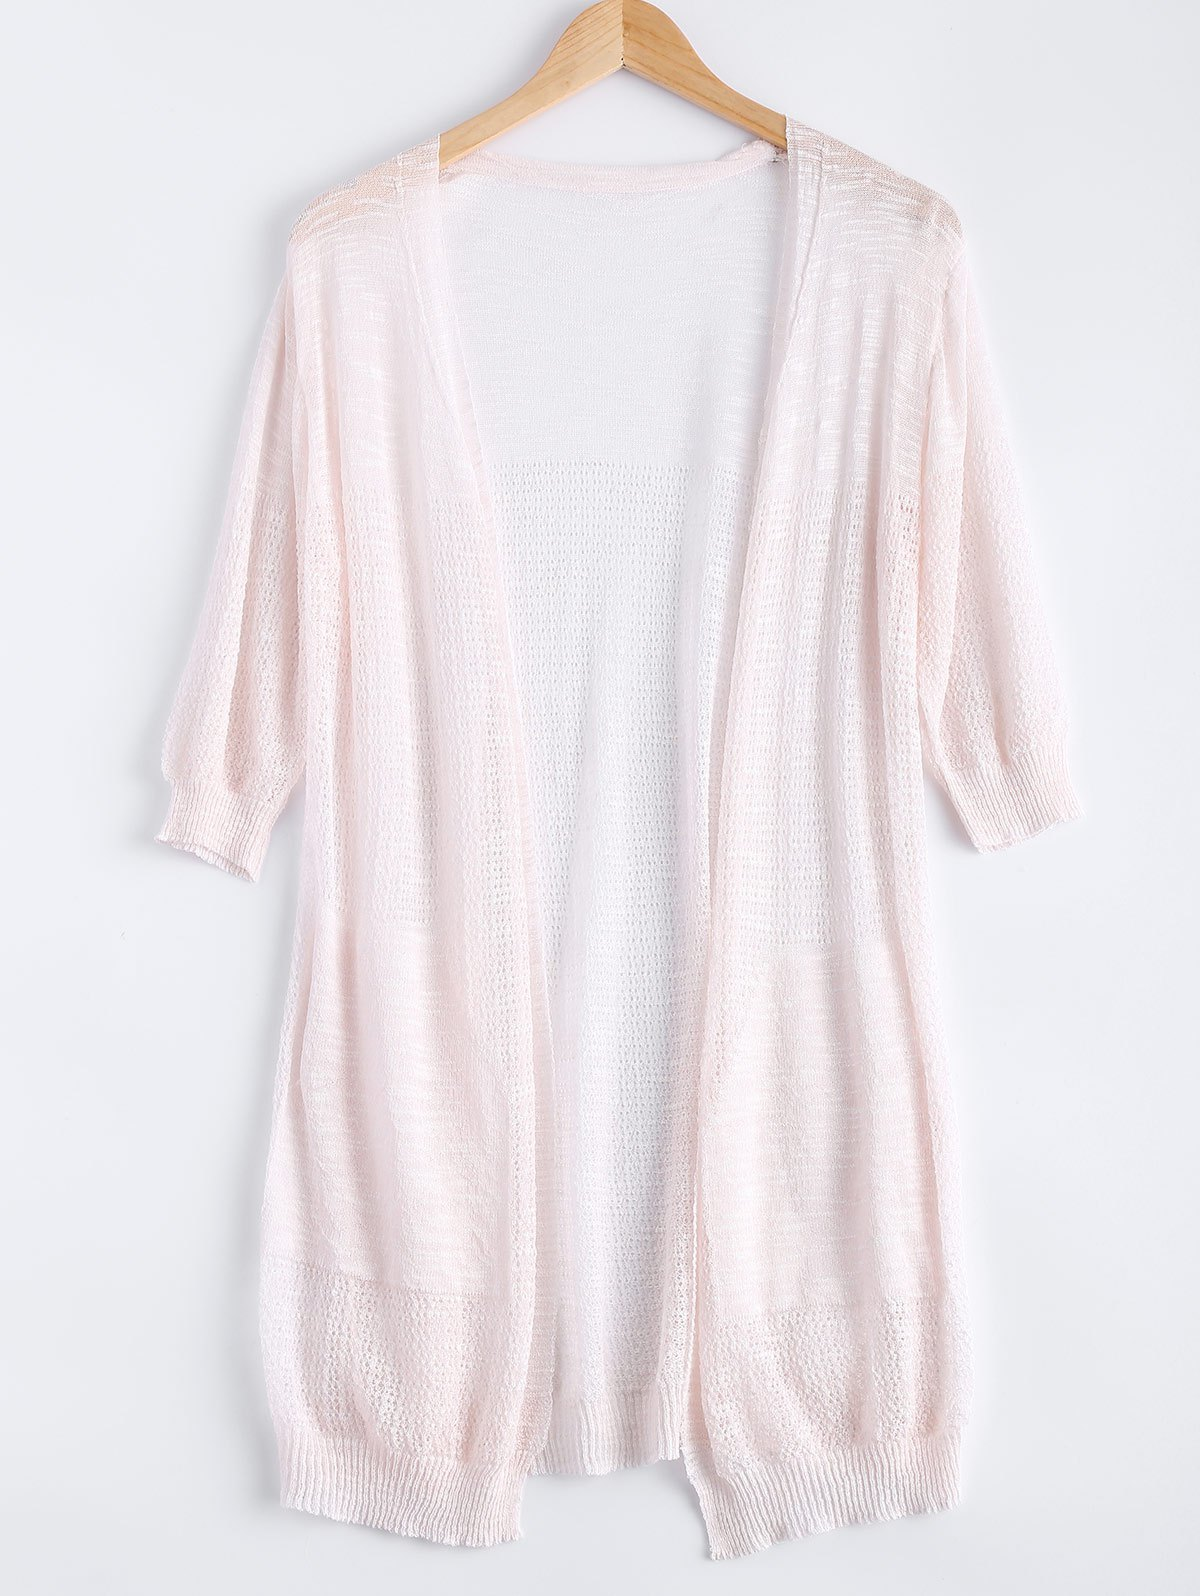 Sweet Pocket Candy Pure Color Semi Sheer Midi Cardigan - SHALLOW PINK ONE SIZE